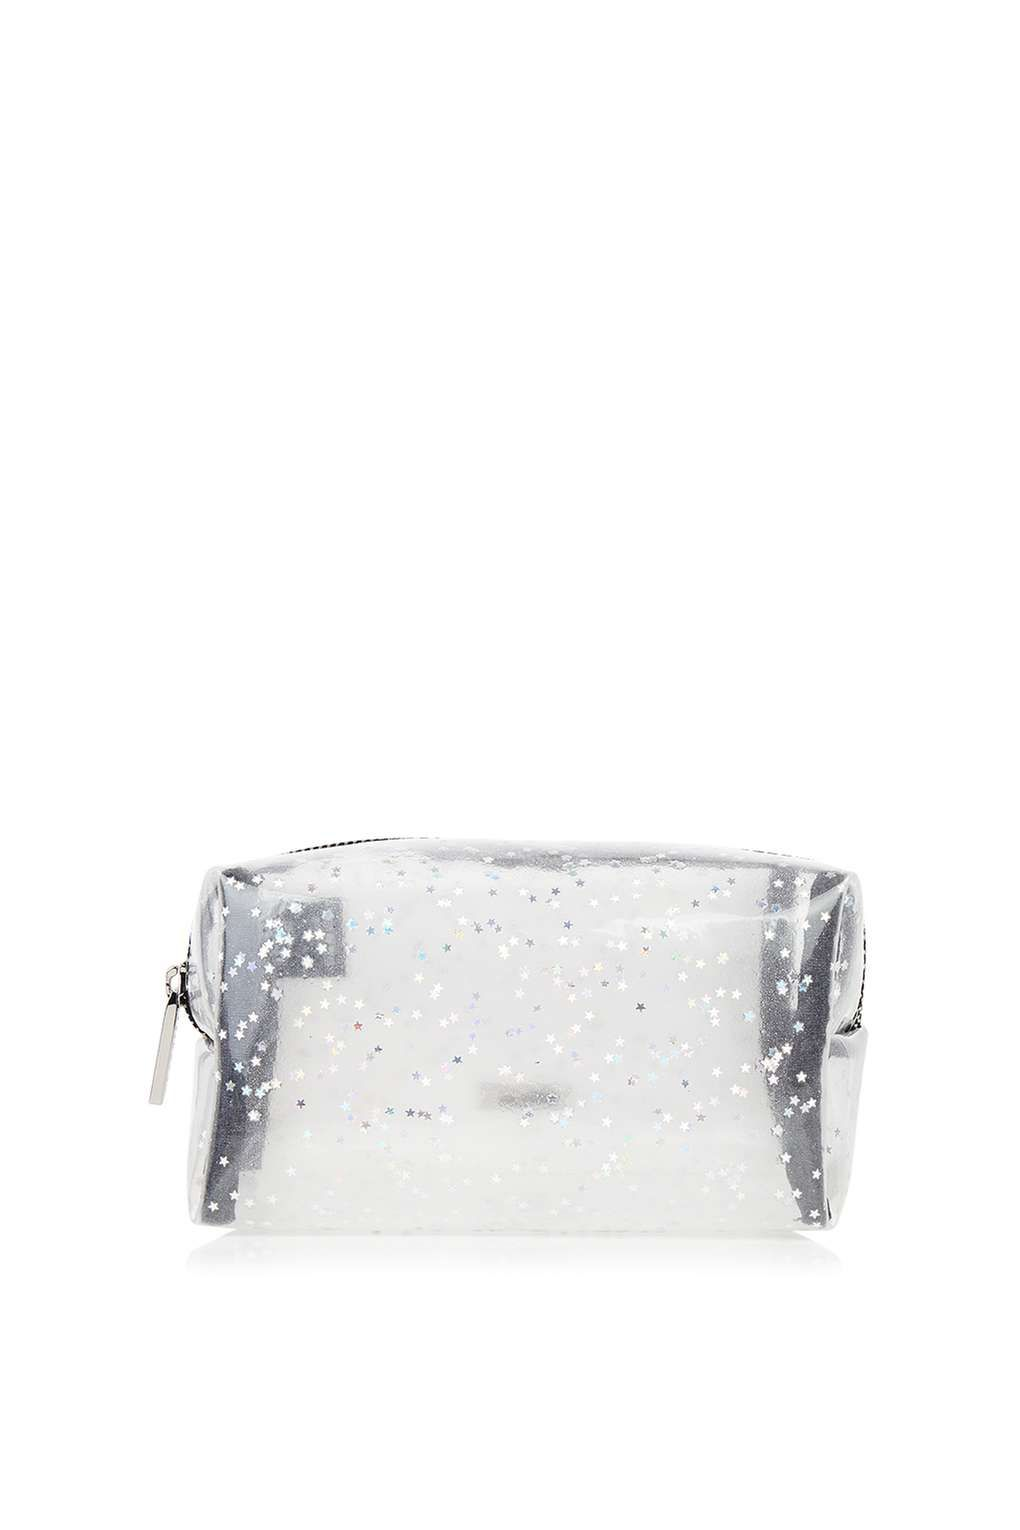 b7fd77e9b4a8 Clear Star Glitter Make Up Bag by Skinnydip - New In- Topshop ...